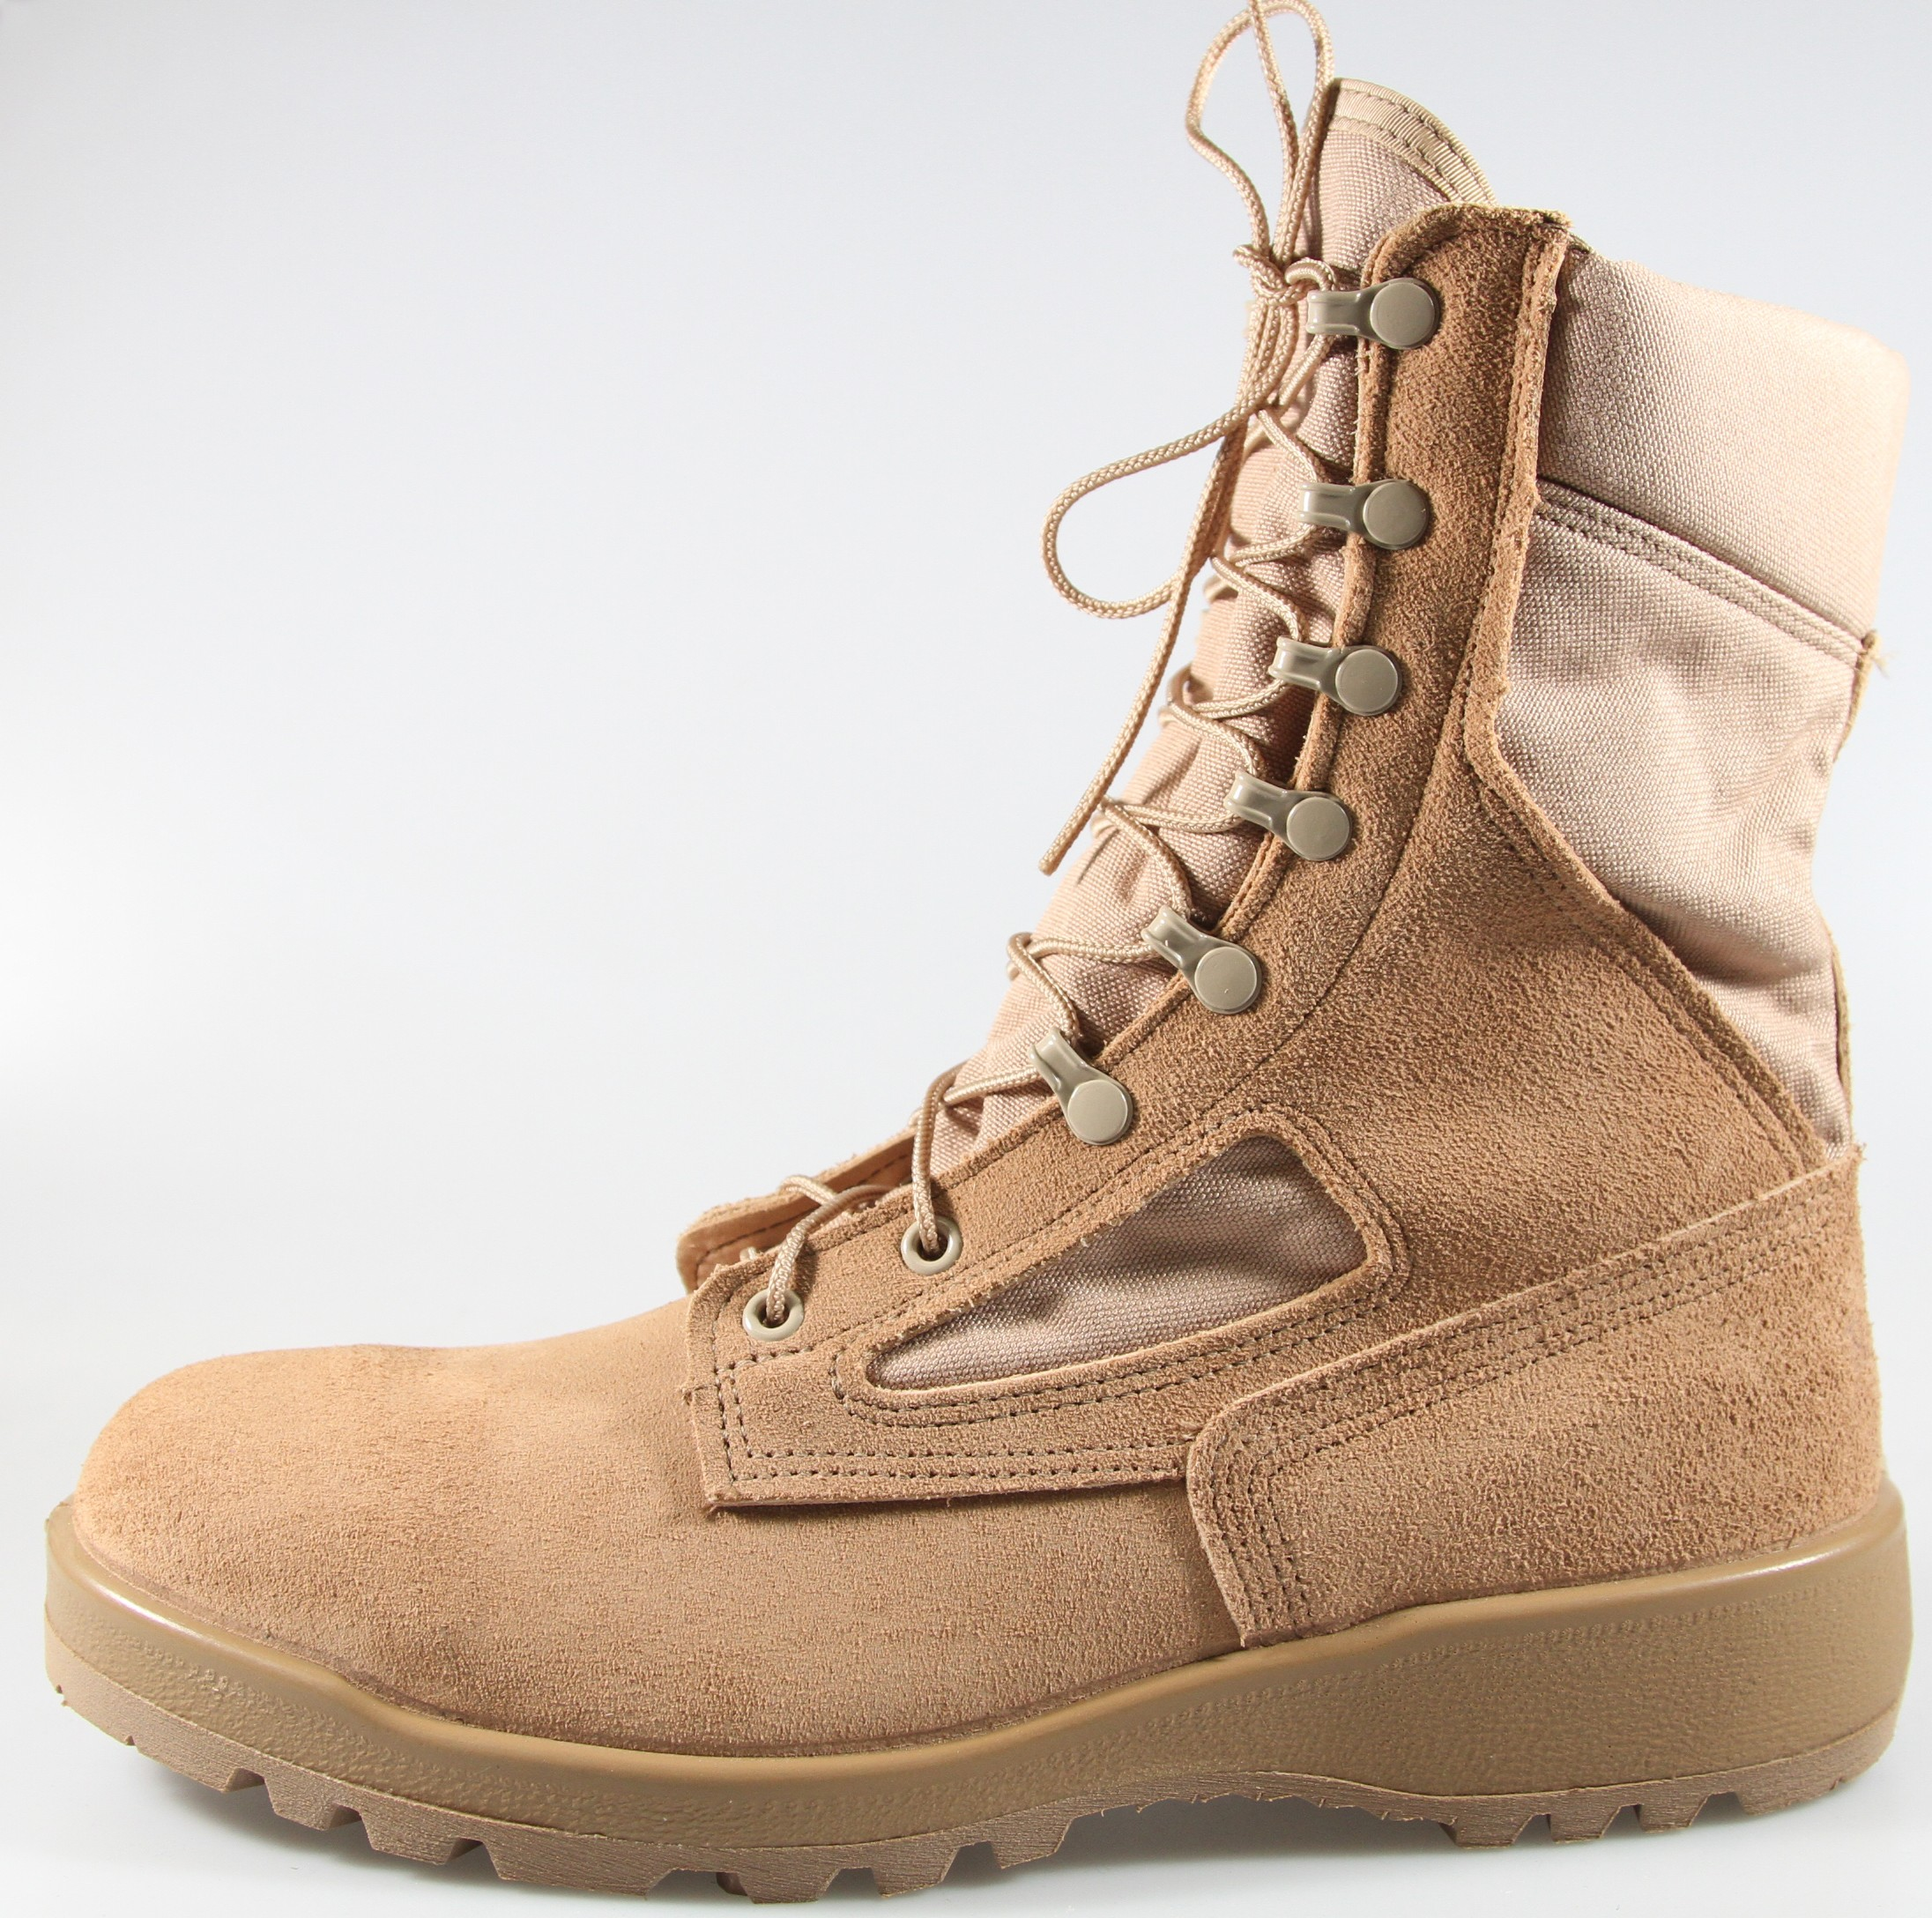 army testing combat boots camouflage patterns article